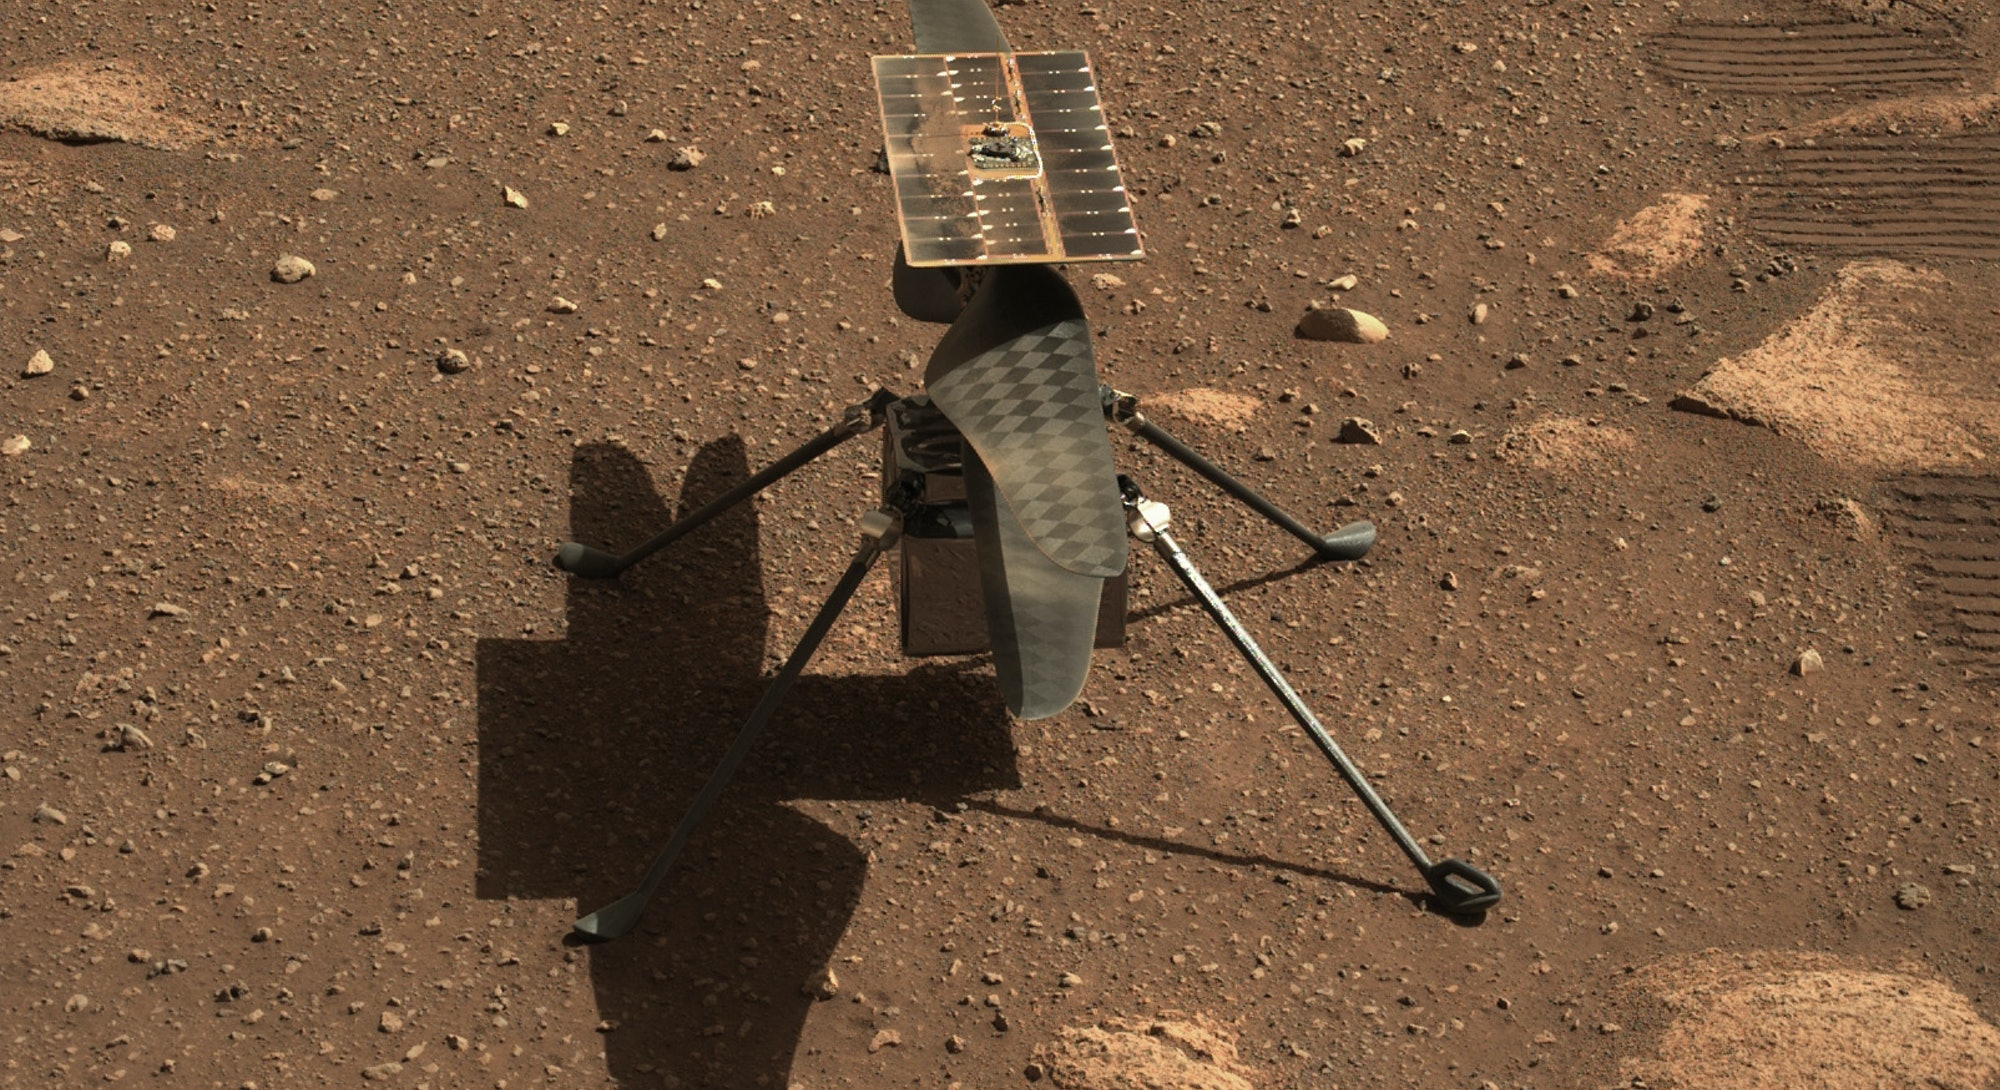 NASA's Ingenuity Mars helicopter is seen here in a close-up taken by Mastcam-Z, a pair of zoomable c...